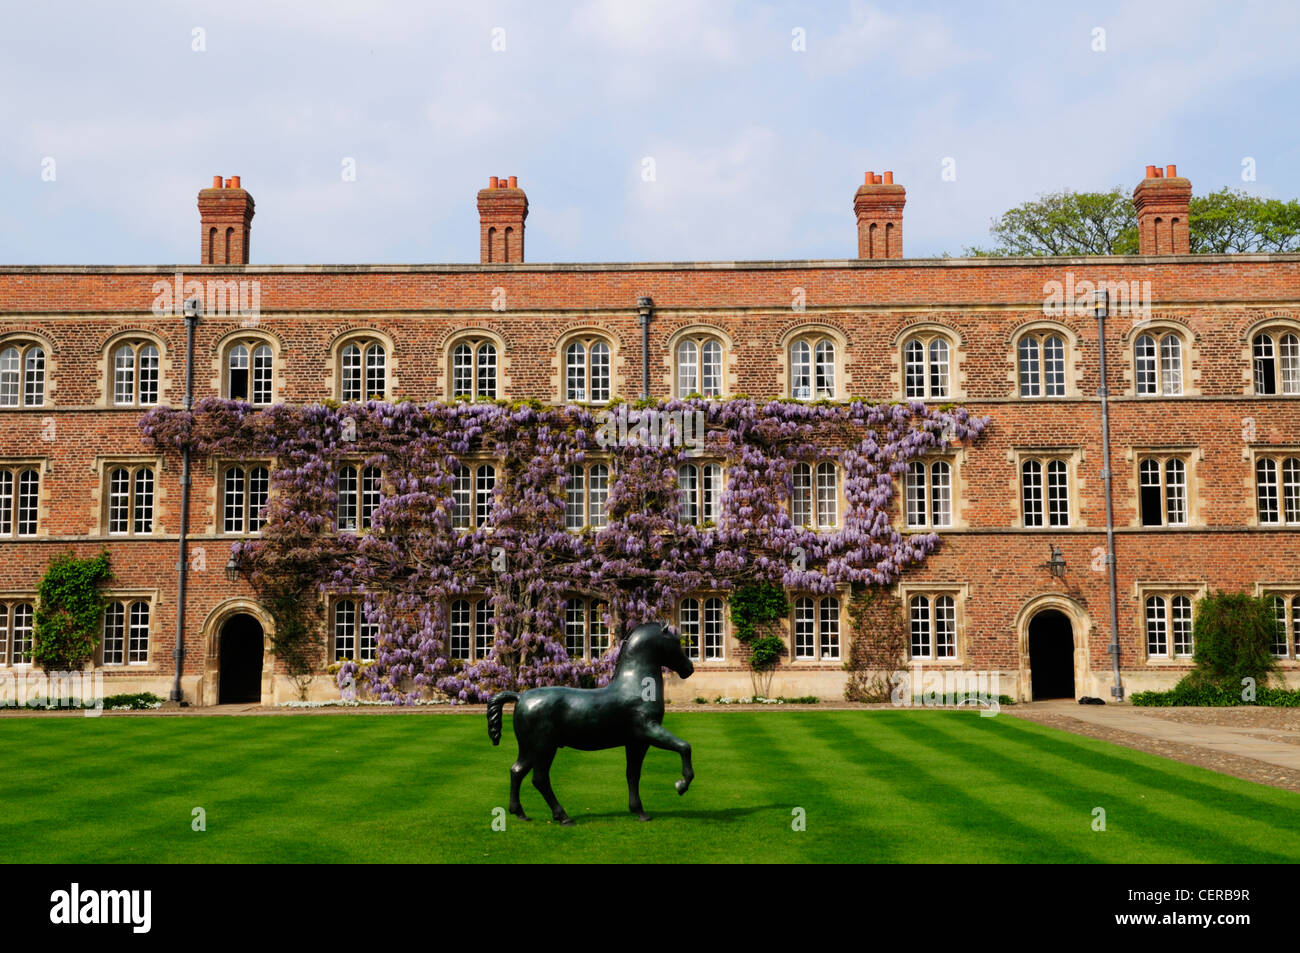 Bronze Horse by Barry Flanagan in First Court at Jesus College, part of the University of Cambridge. - Stock Image